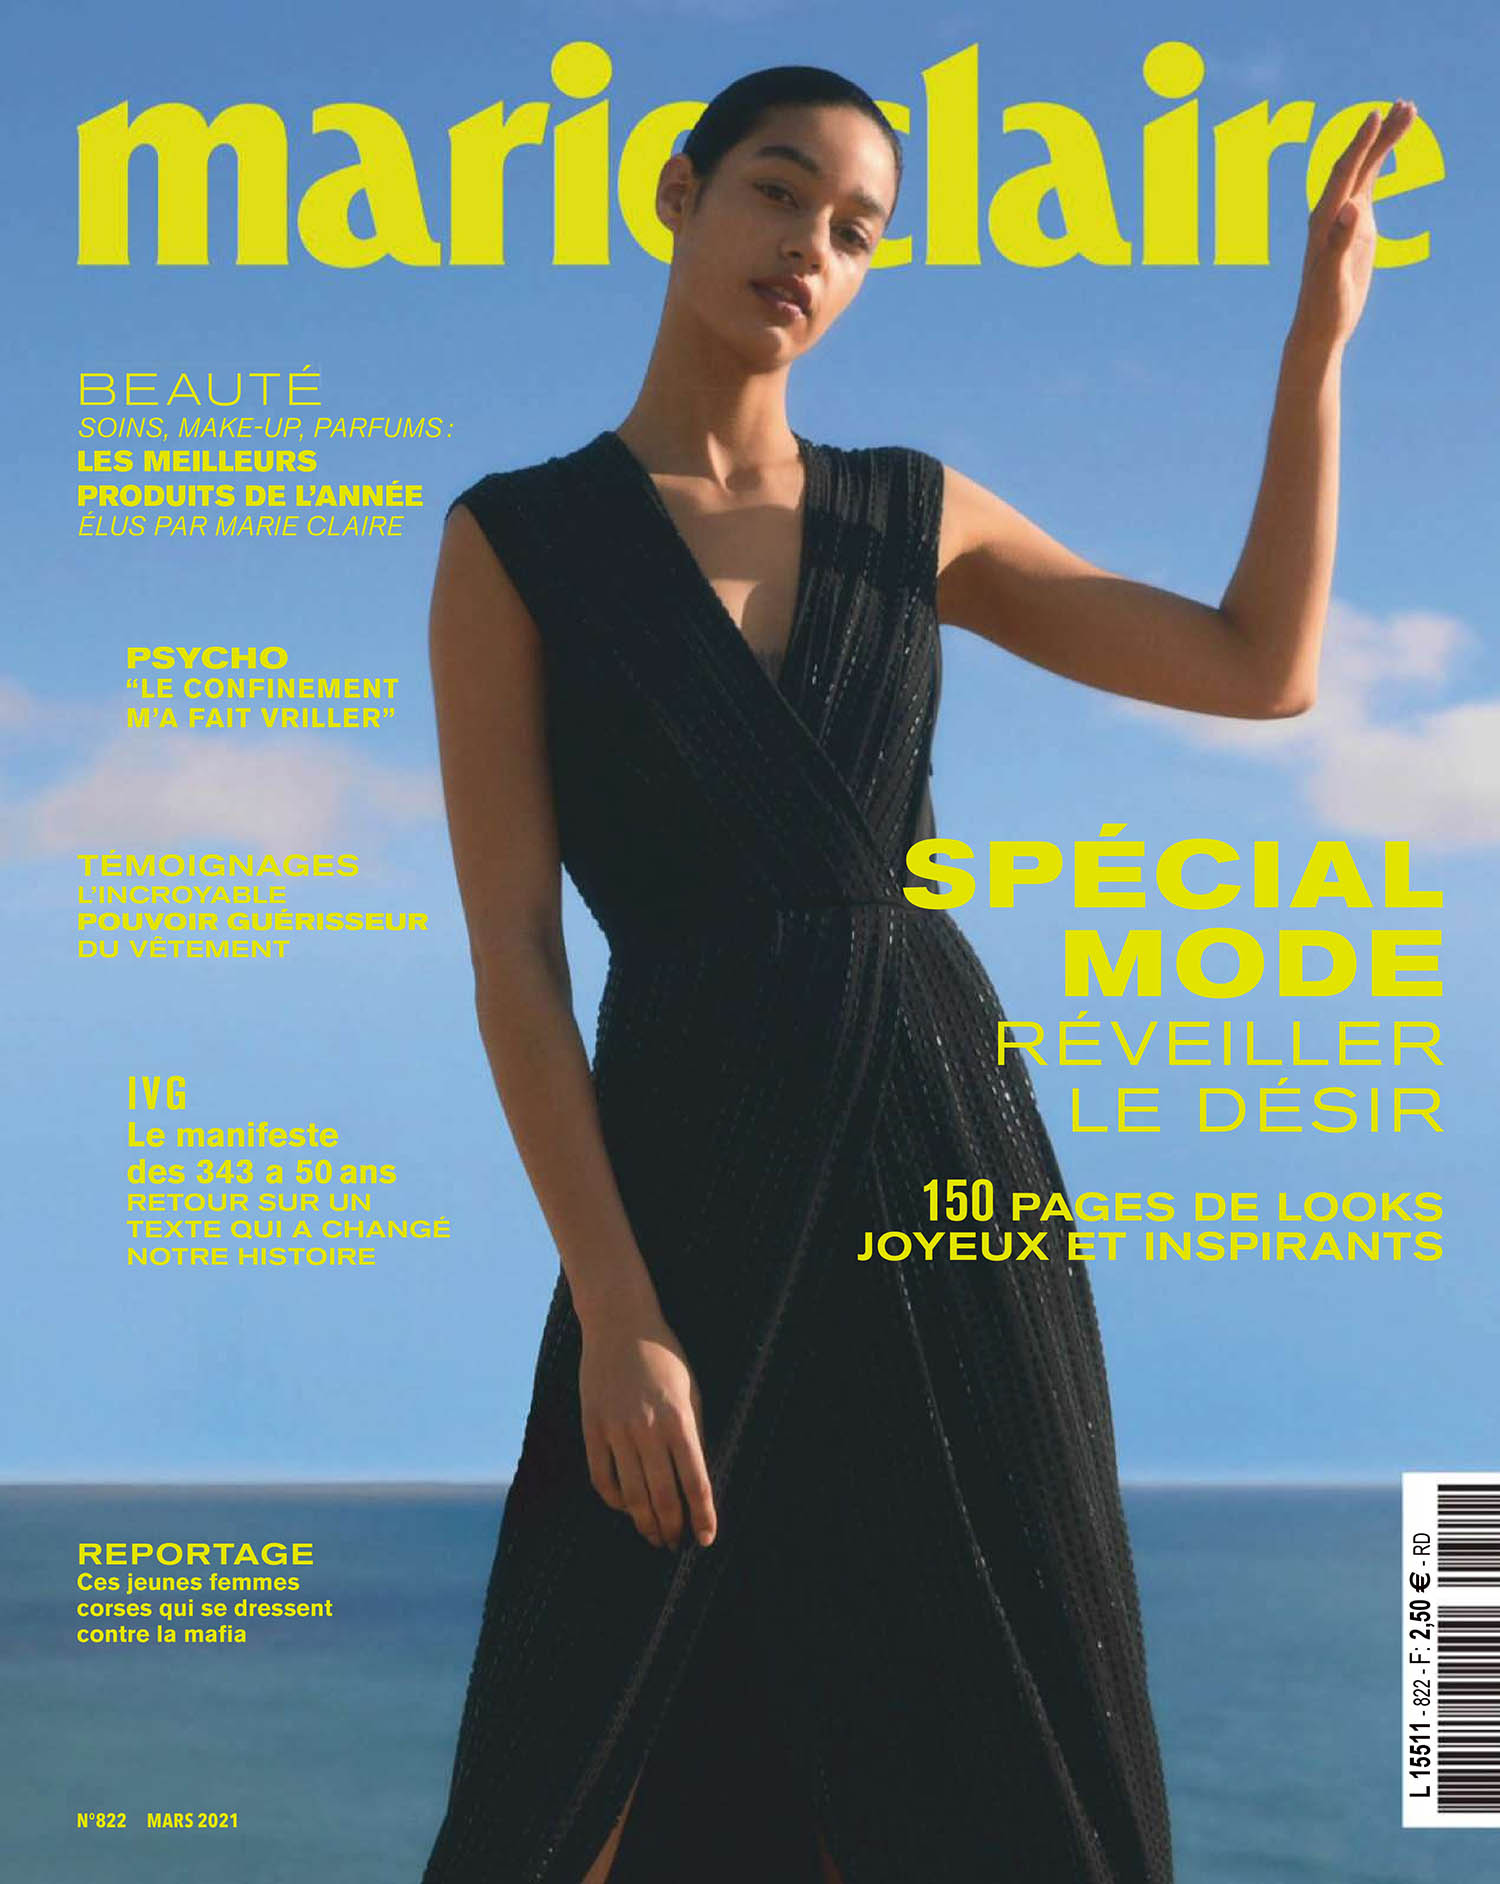 Damaris Goddrie covers Marie Claire France March 2021 by Jesse Laitinen